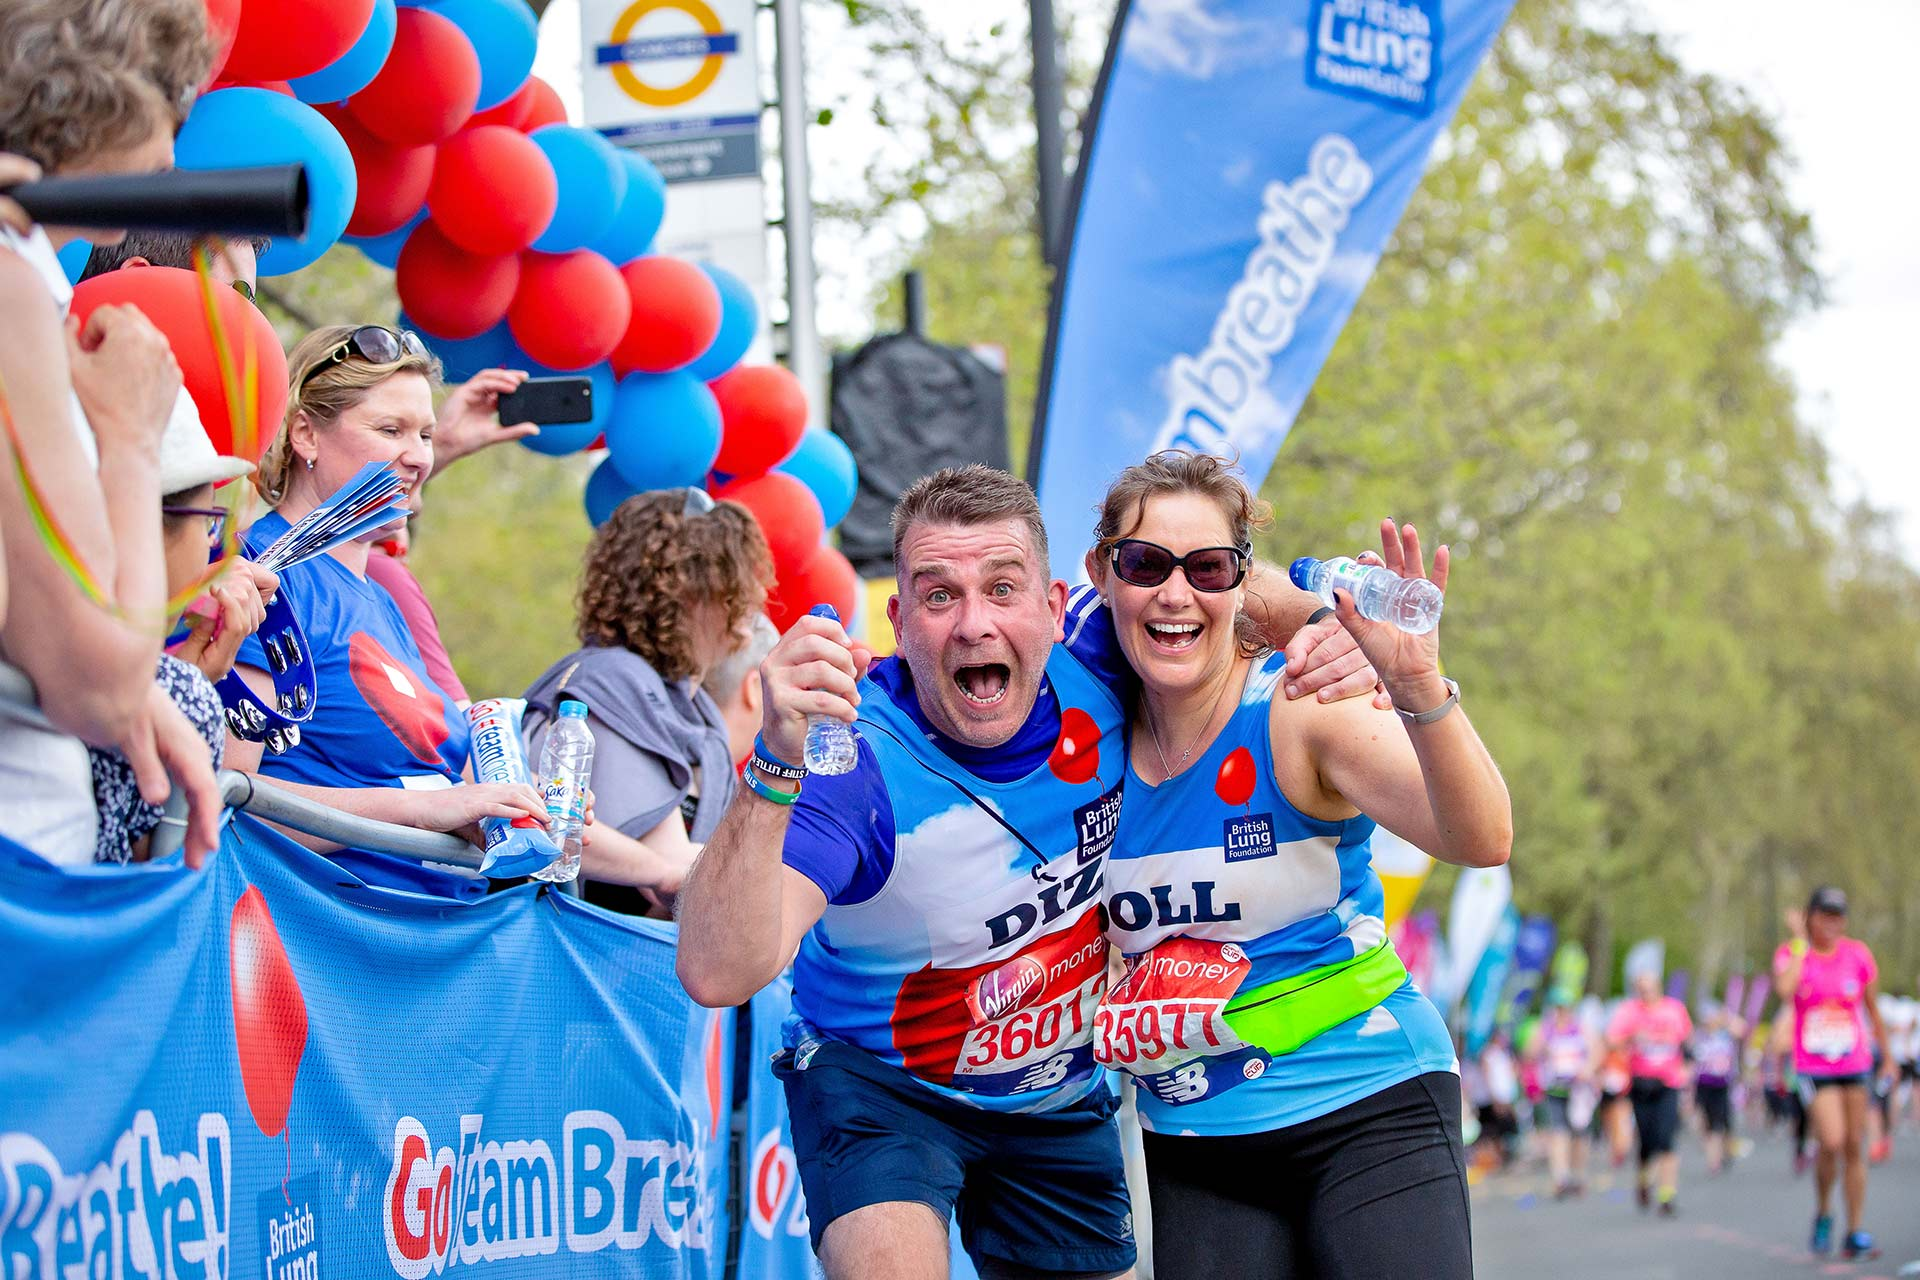 The-Virgin-London-Marathon-2018-with-British-Lung-Foundation-©-Brendan-Foster-Photography-719-Edit-116.jpg